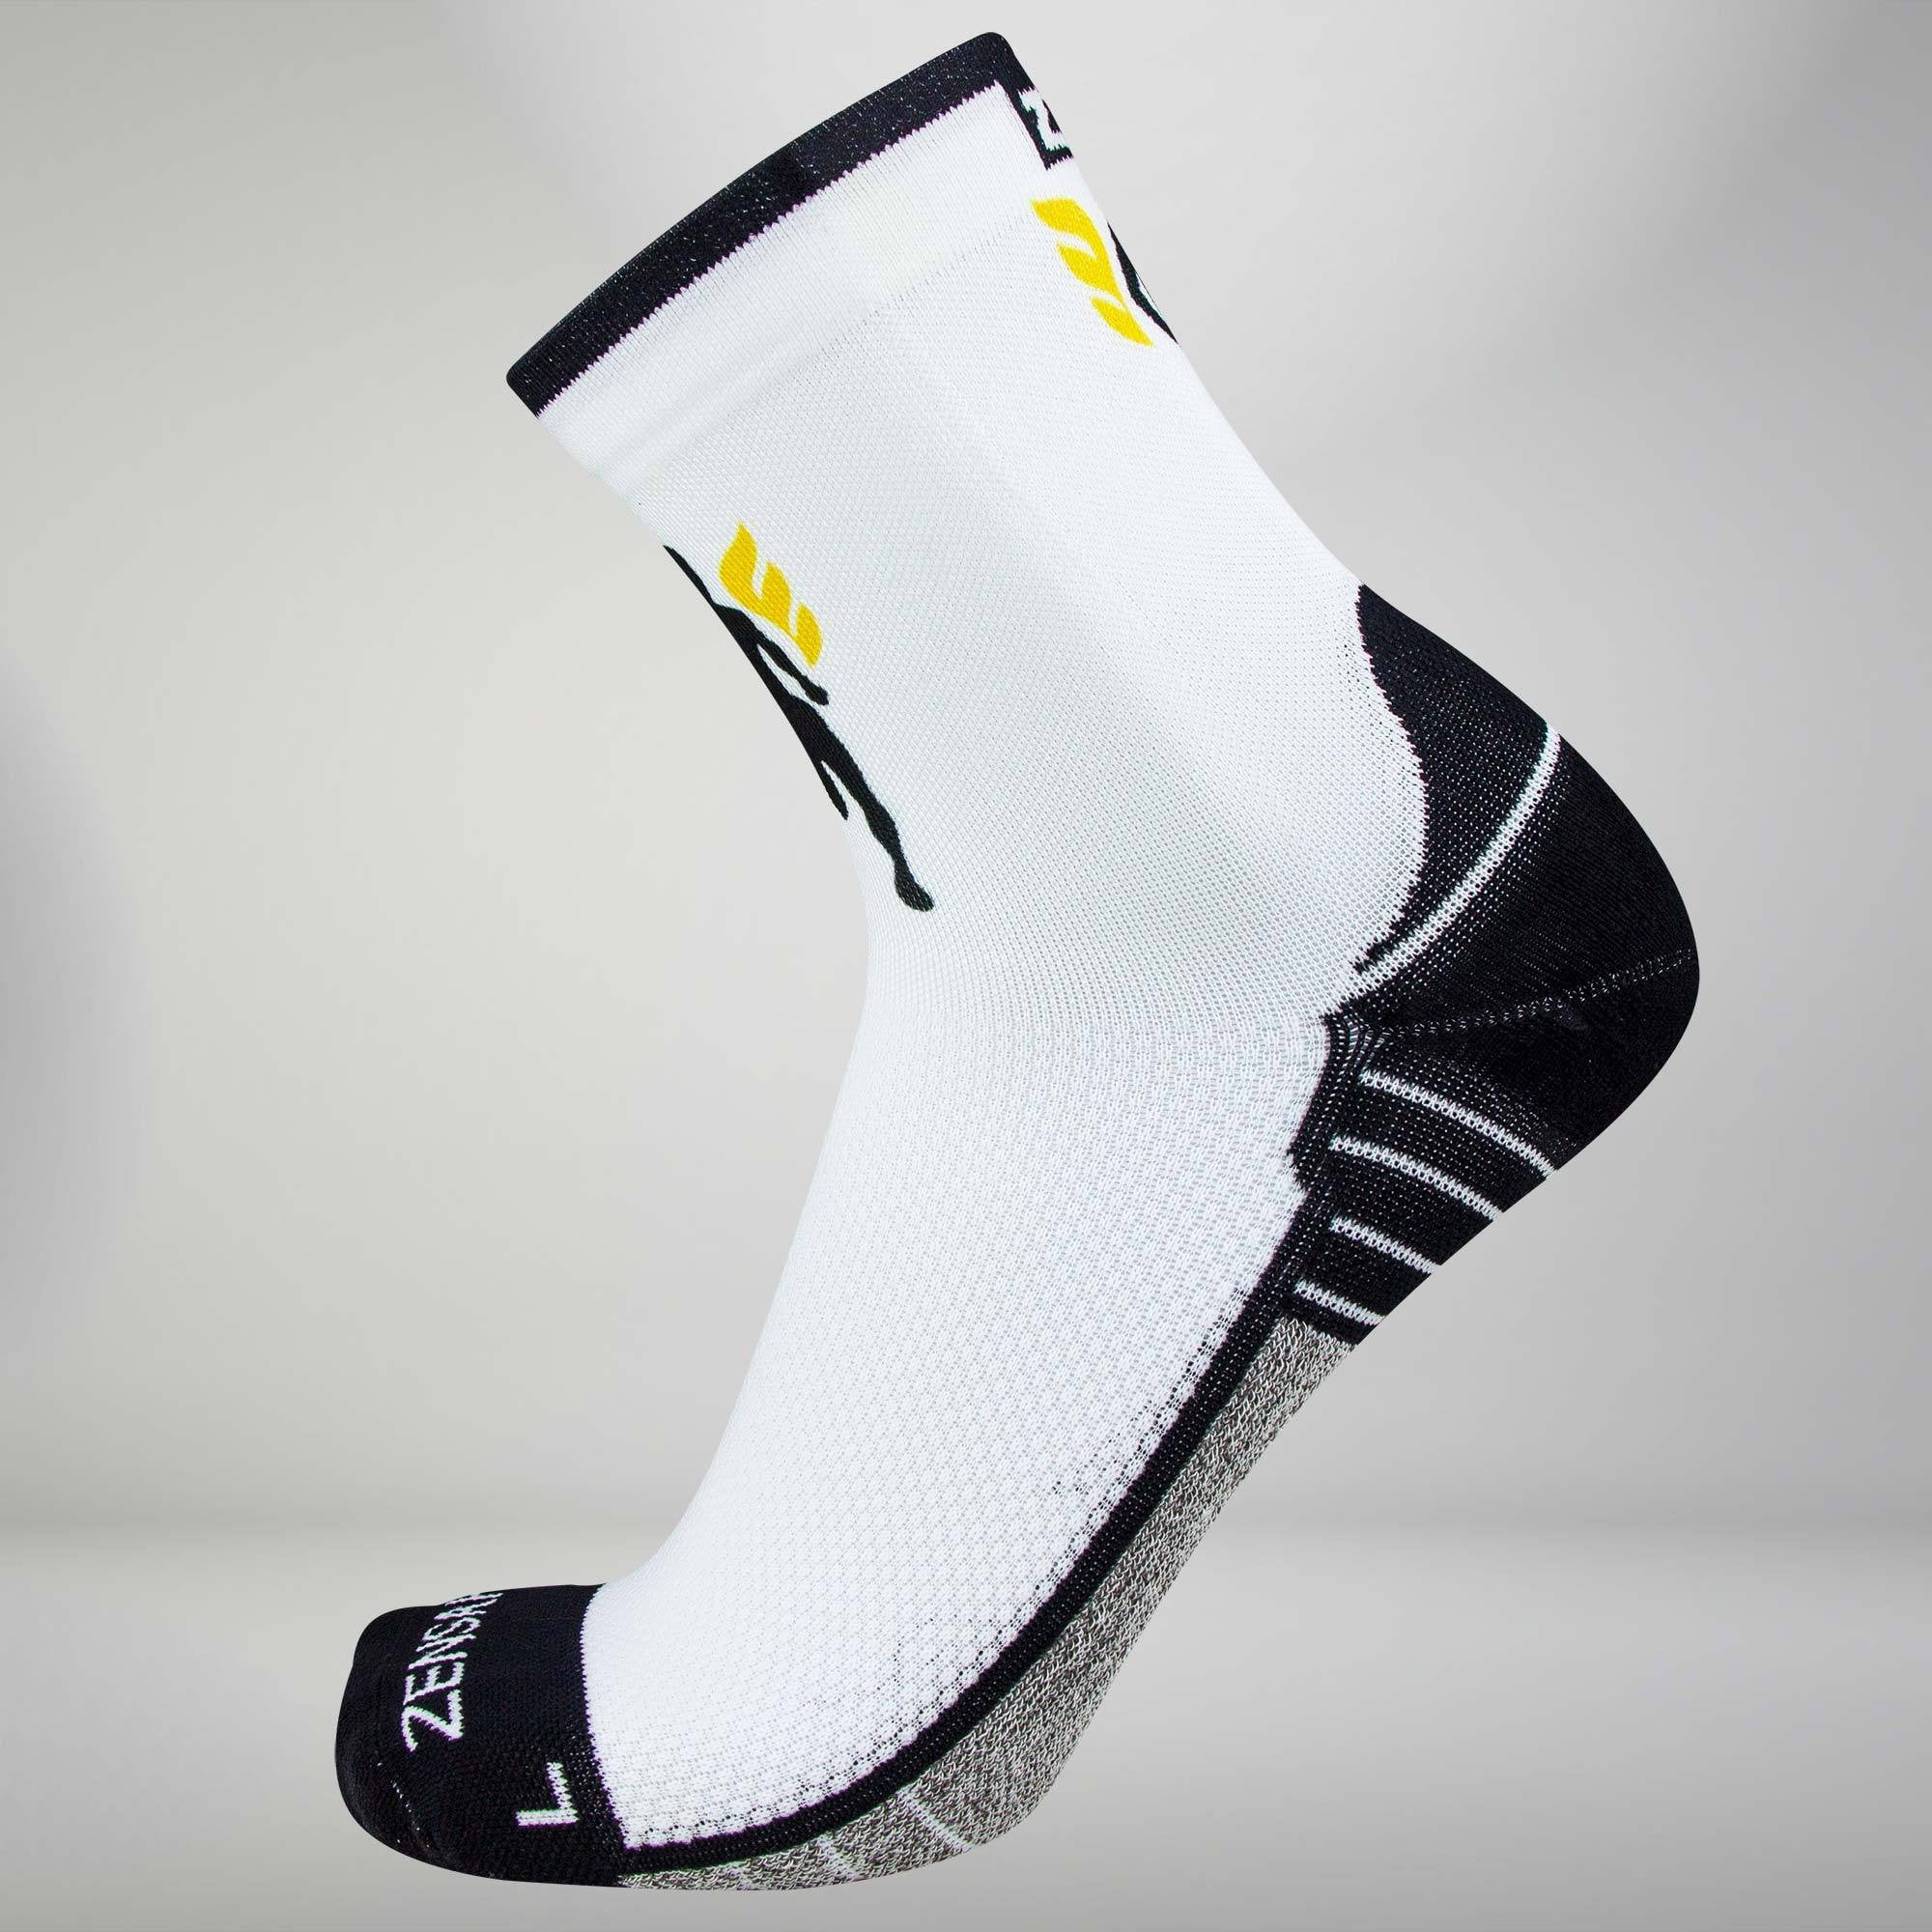 Dean Karnazes Socks (Mini Crew)